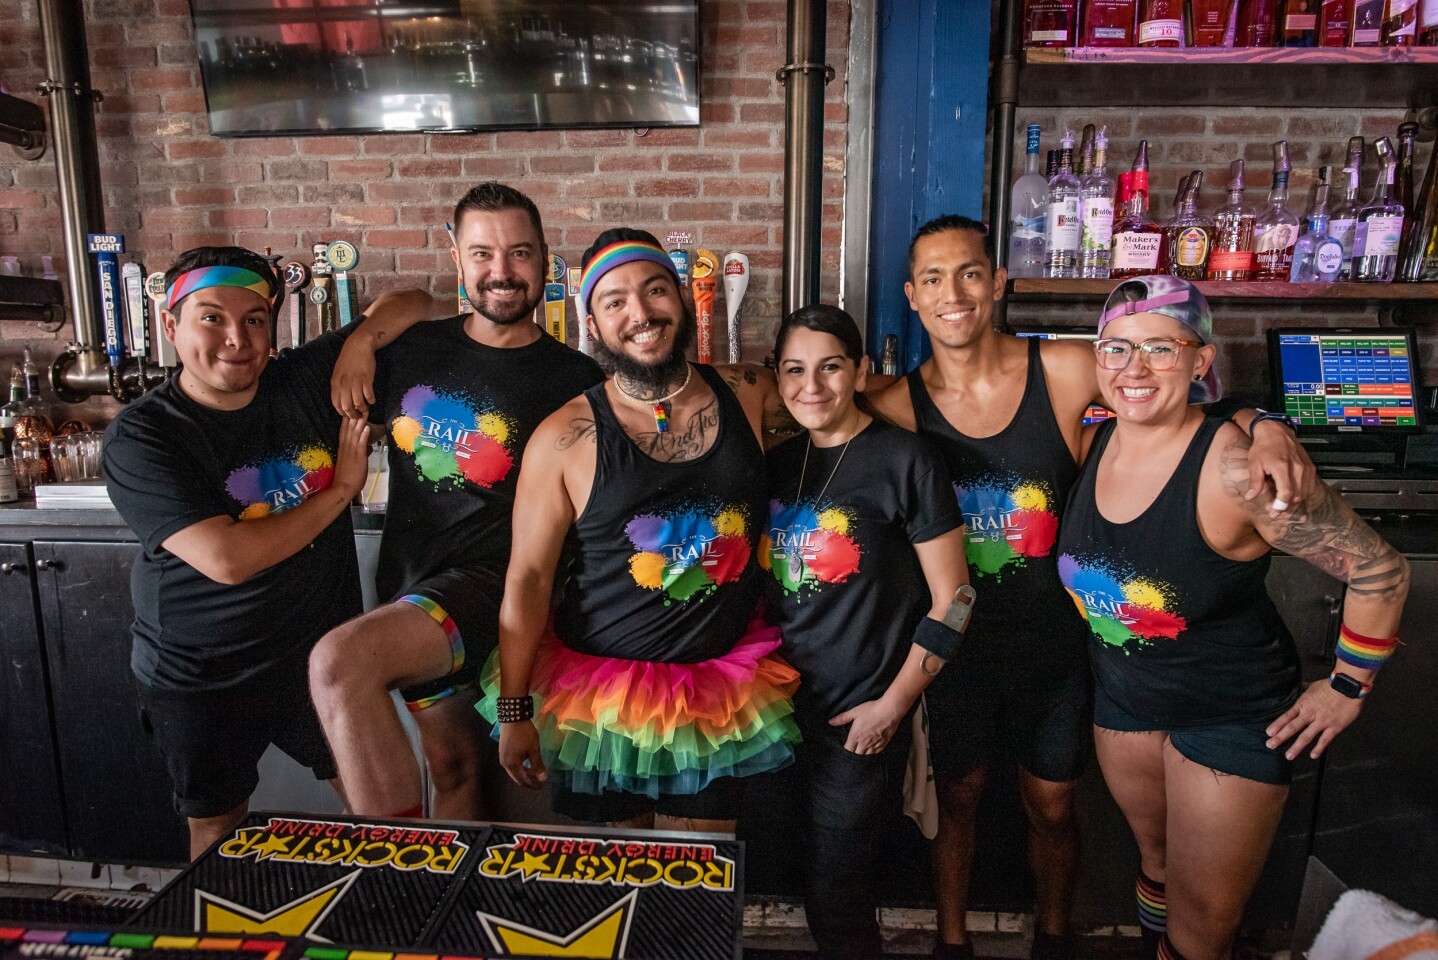 San Diego showed its colors and celebrated Pride at The Rail in Hillcrest on Saturday, July 17, 2021.